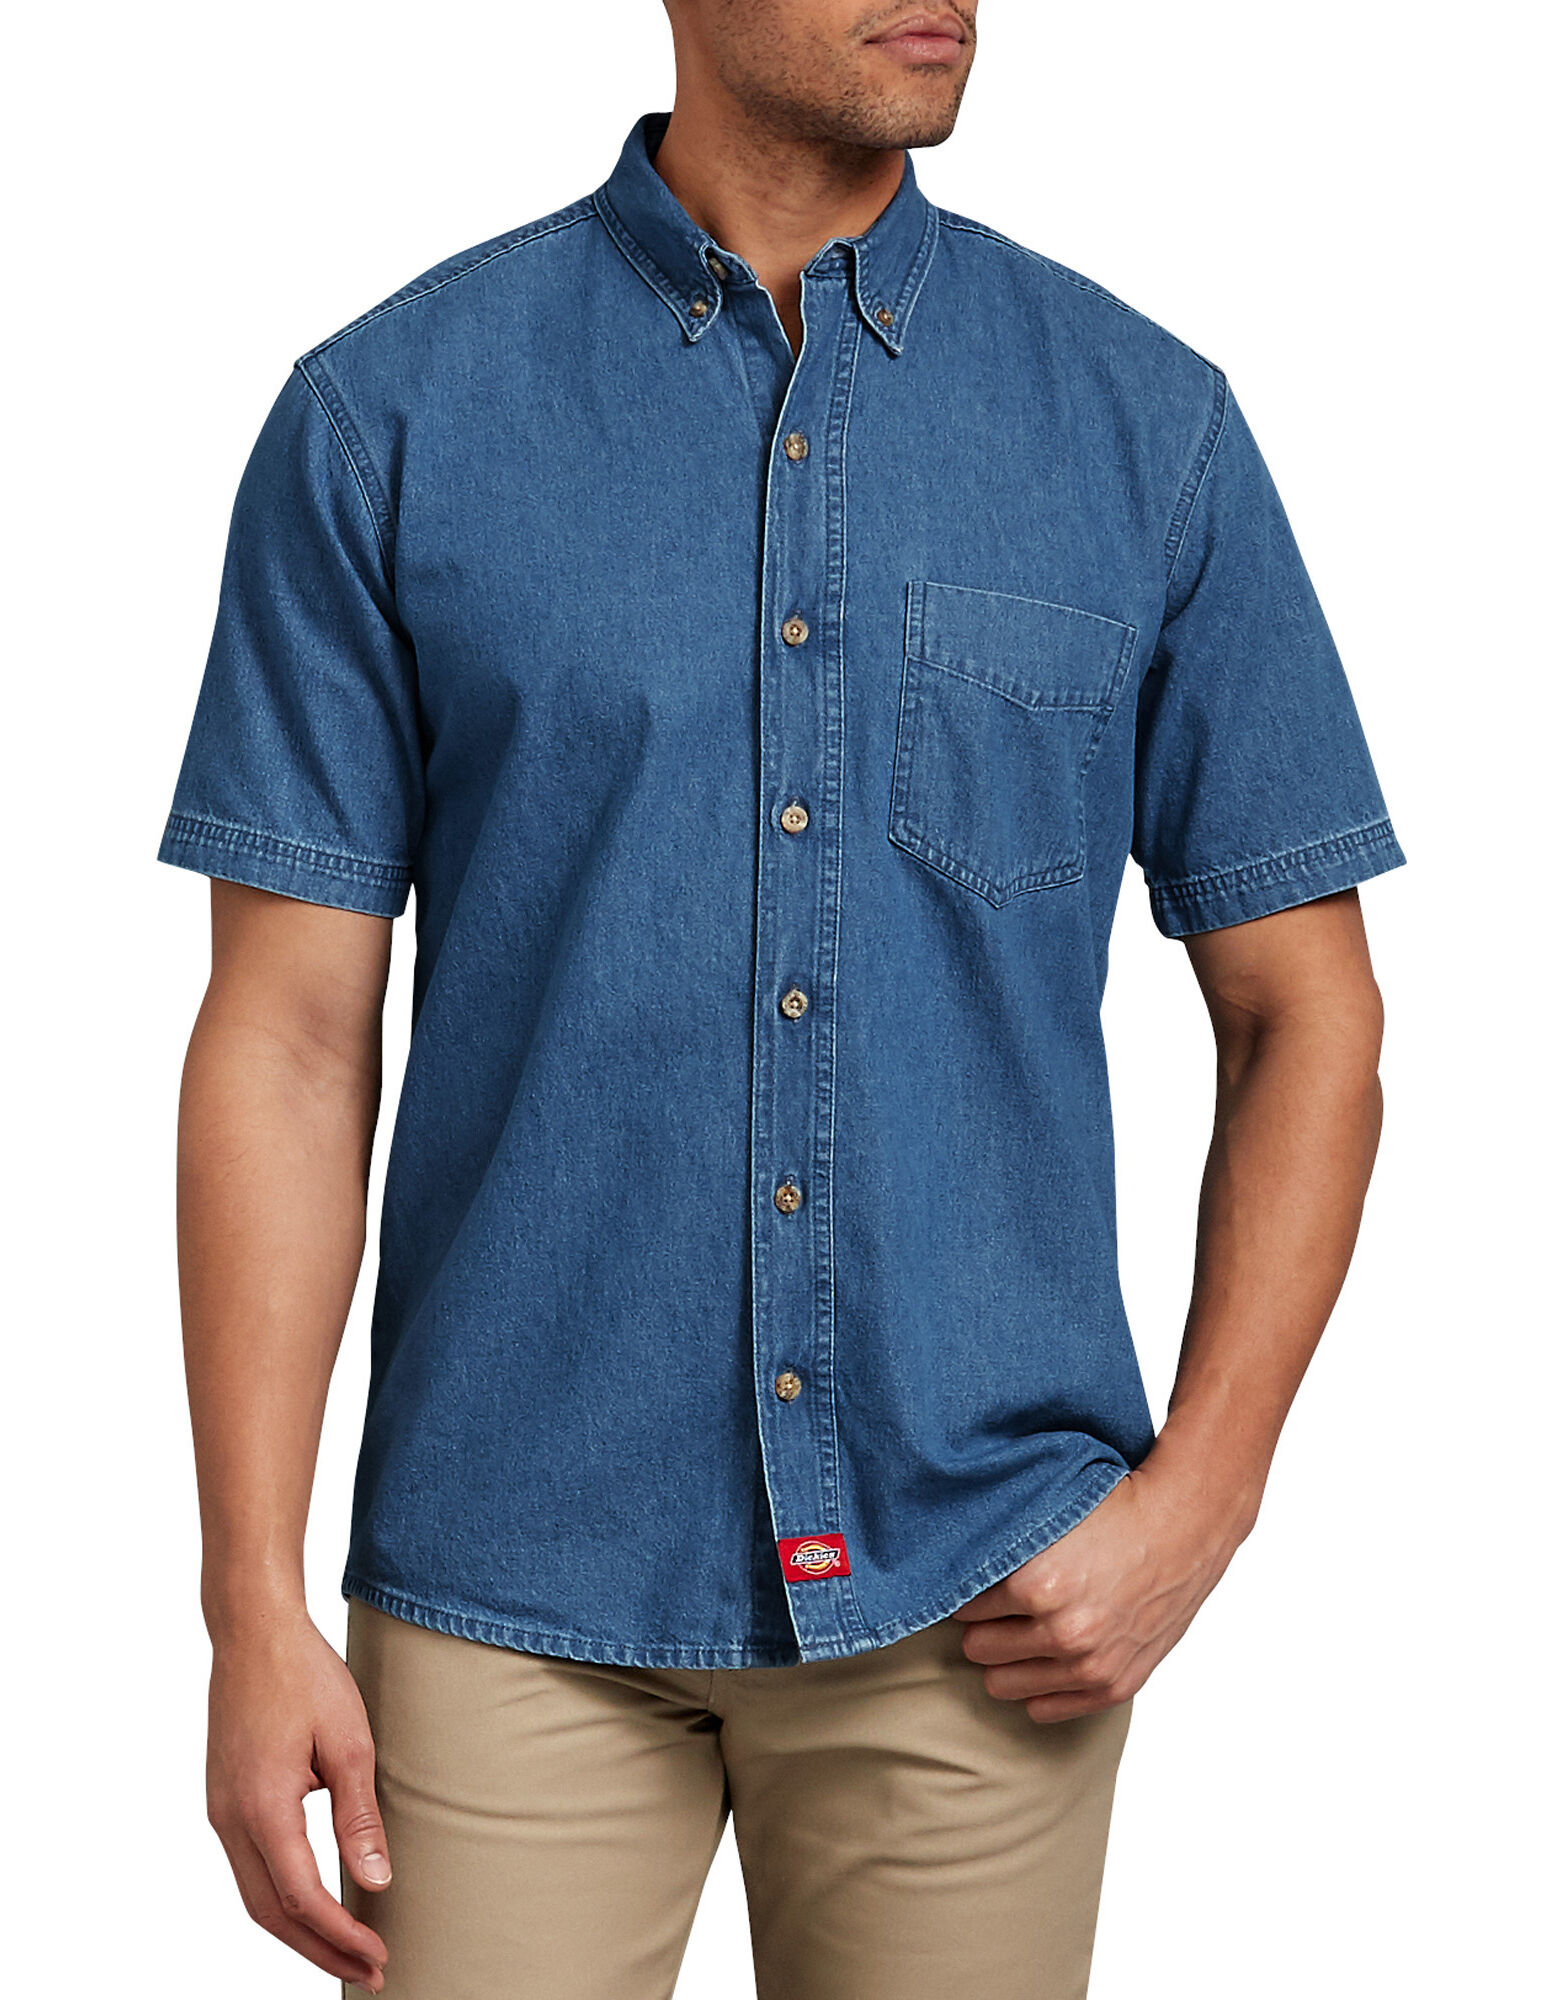 Short sleeve button down denim shirt mens shirts dickies for Short sleeved shirts for men